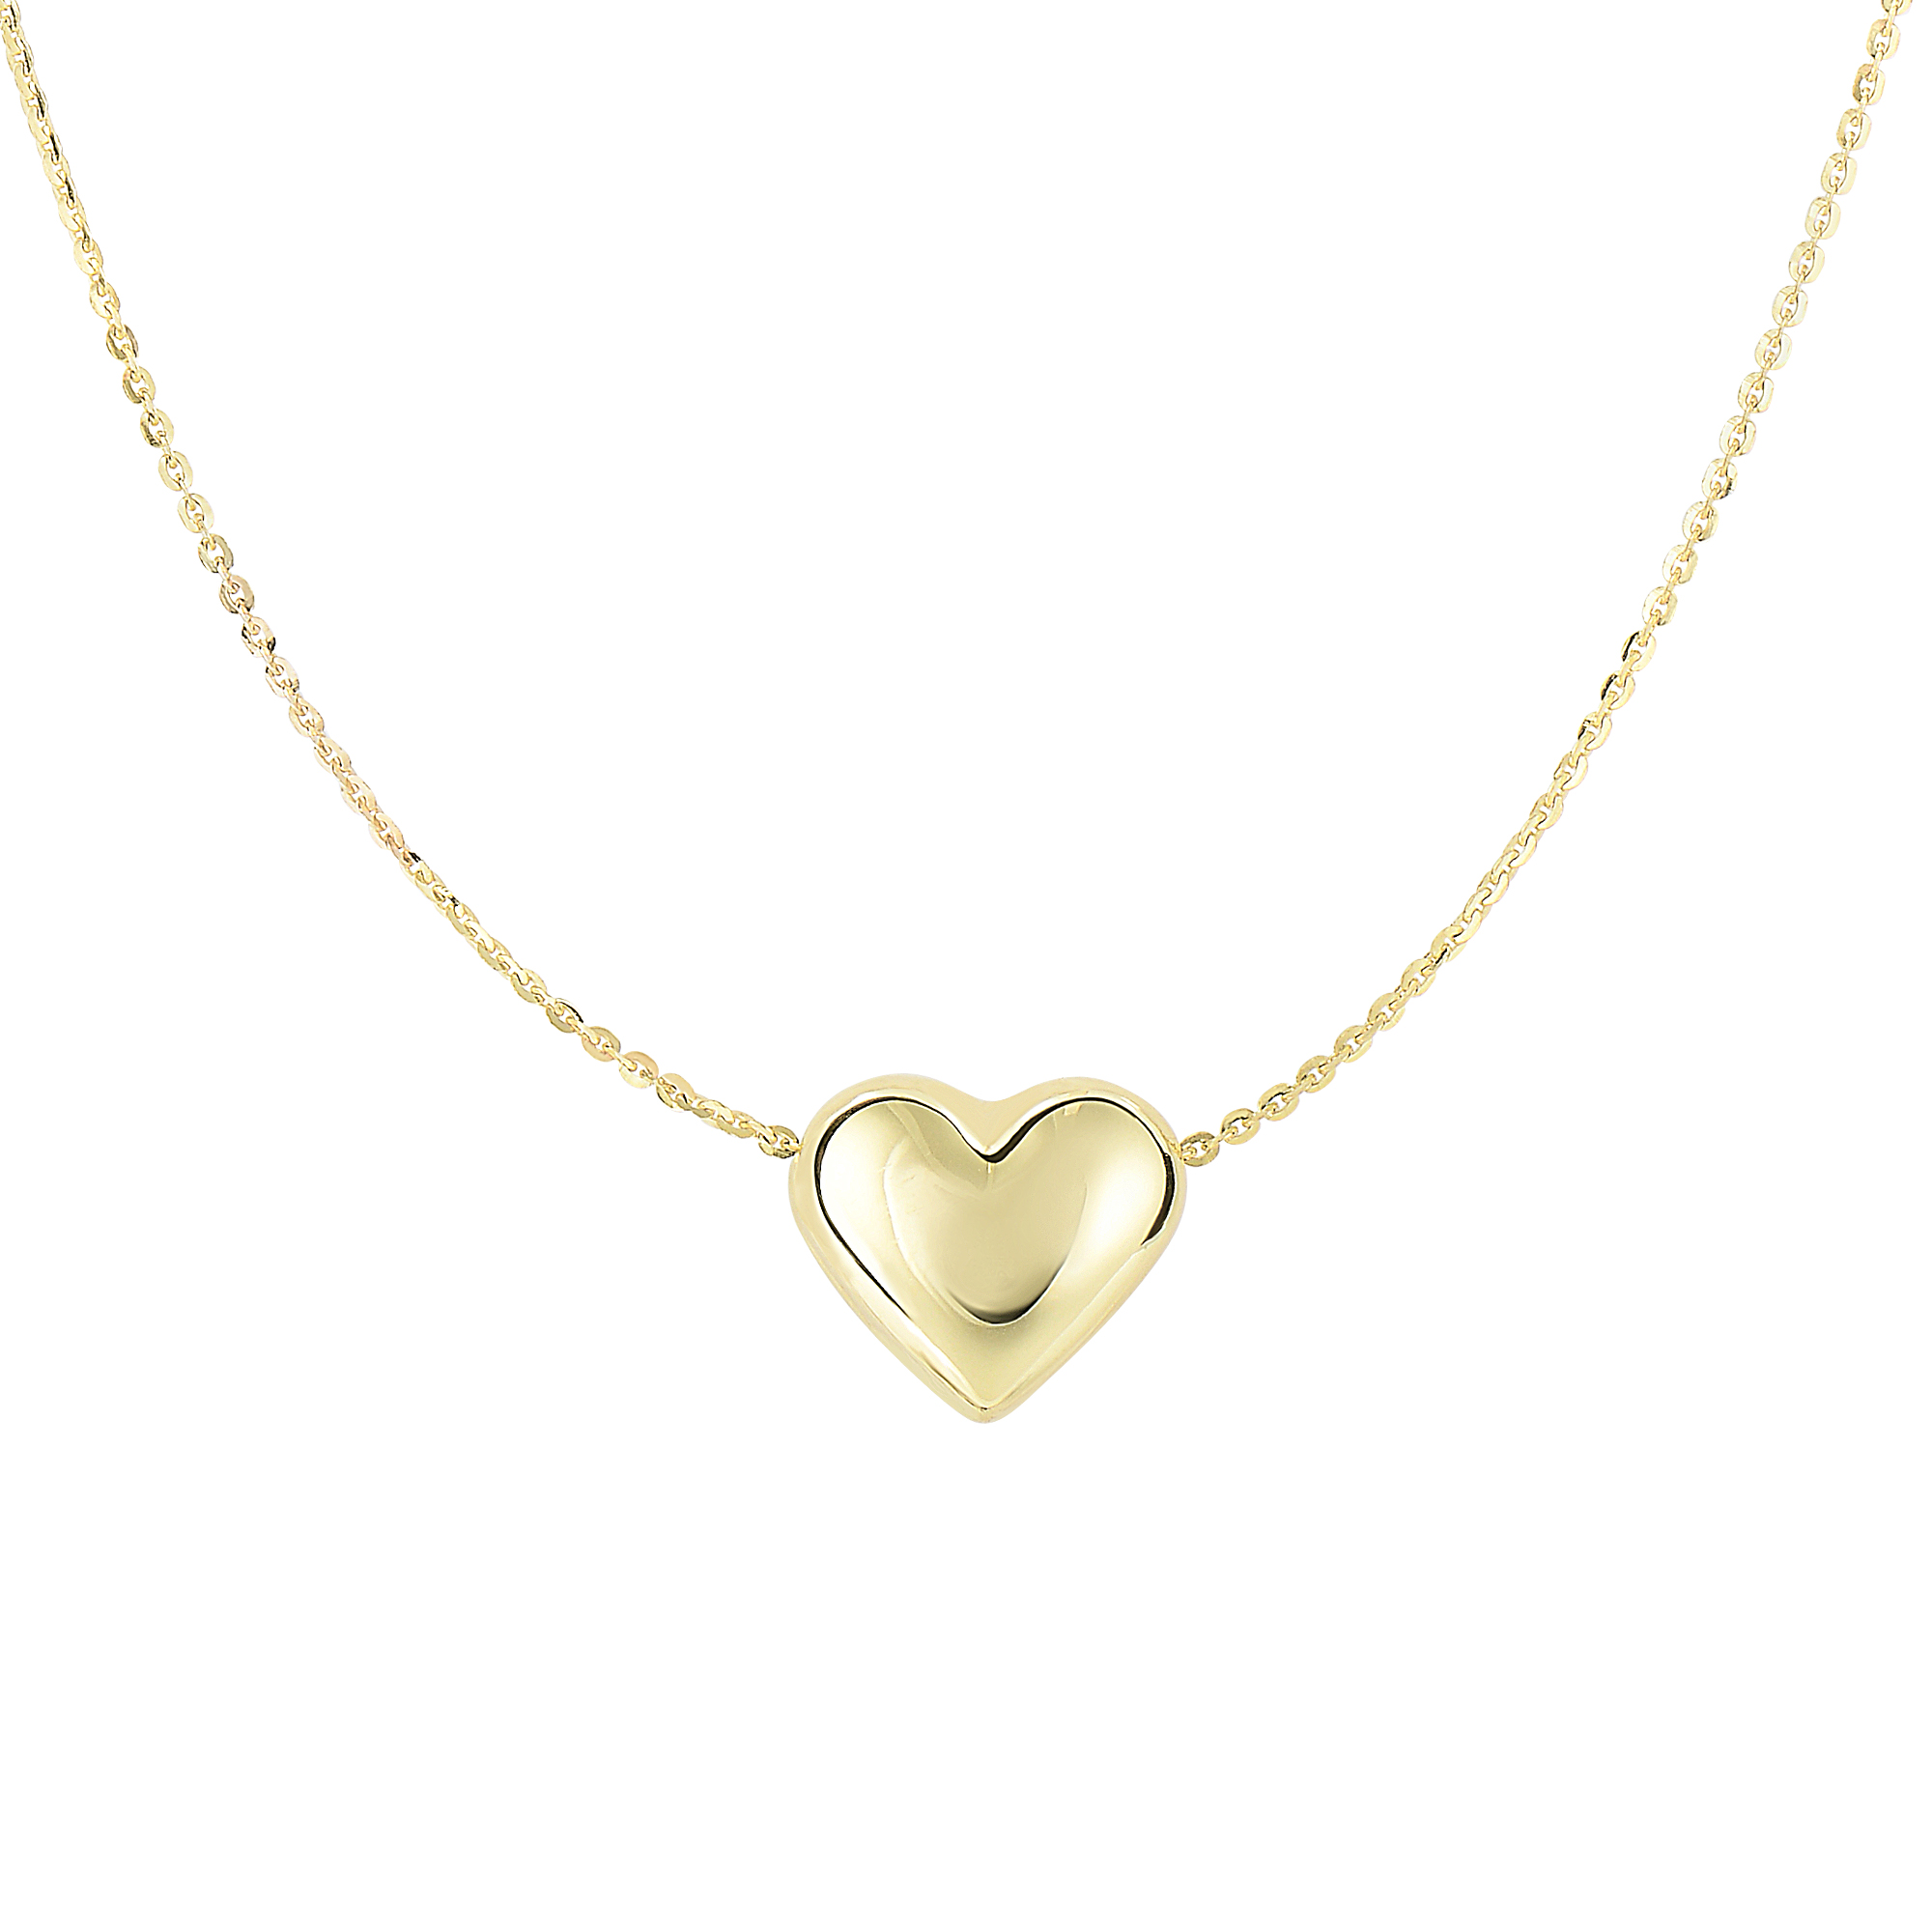 14kt 18 inches Yellow Gold Shiny 9x10.2mm Sliding Puffed Heart On 0.87mm Diamond Cut Cable Chain Necklace with Spring Ring Clasp